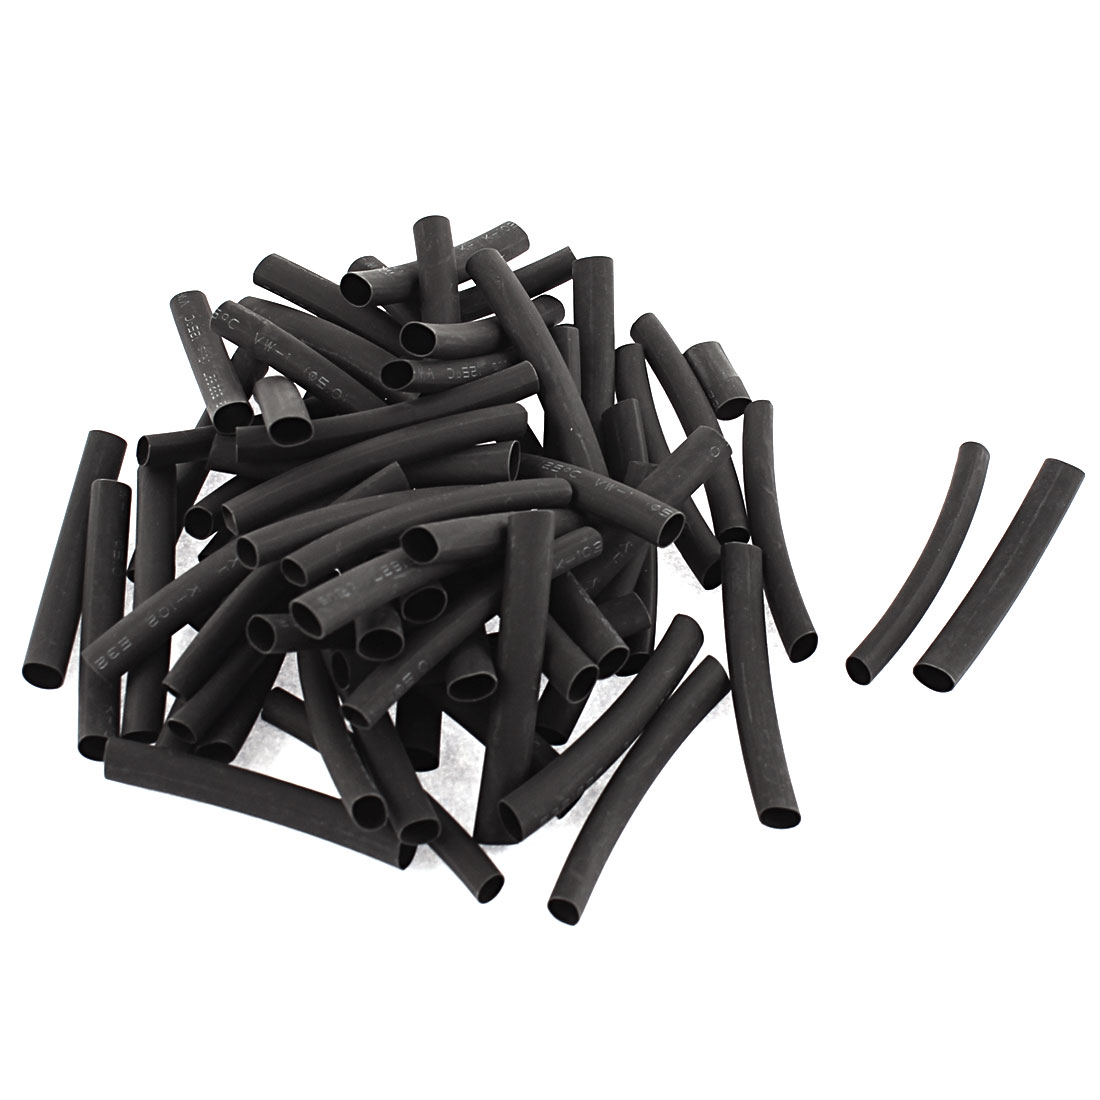 Electrical Connection Cable Sleeve 50mm Length Heat Shrink Tubing Black 63Pcs